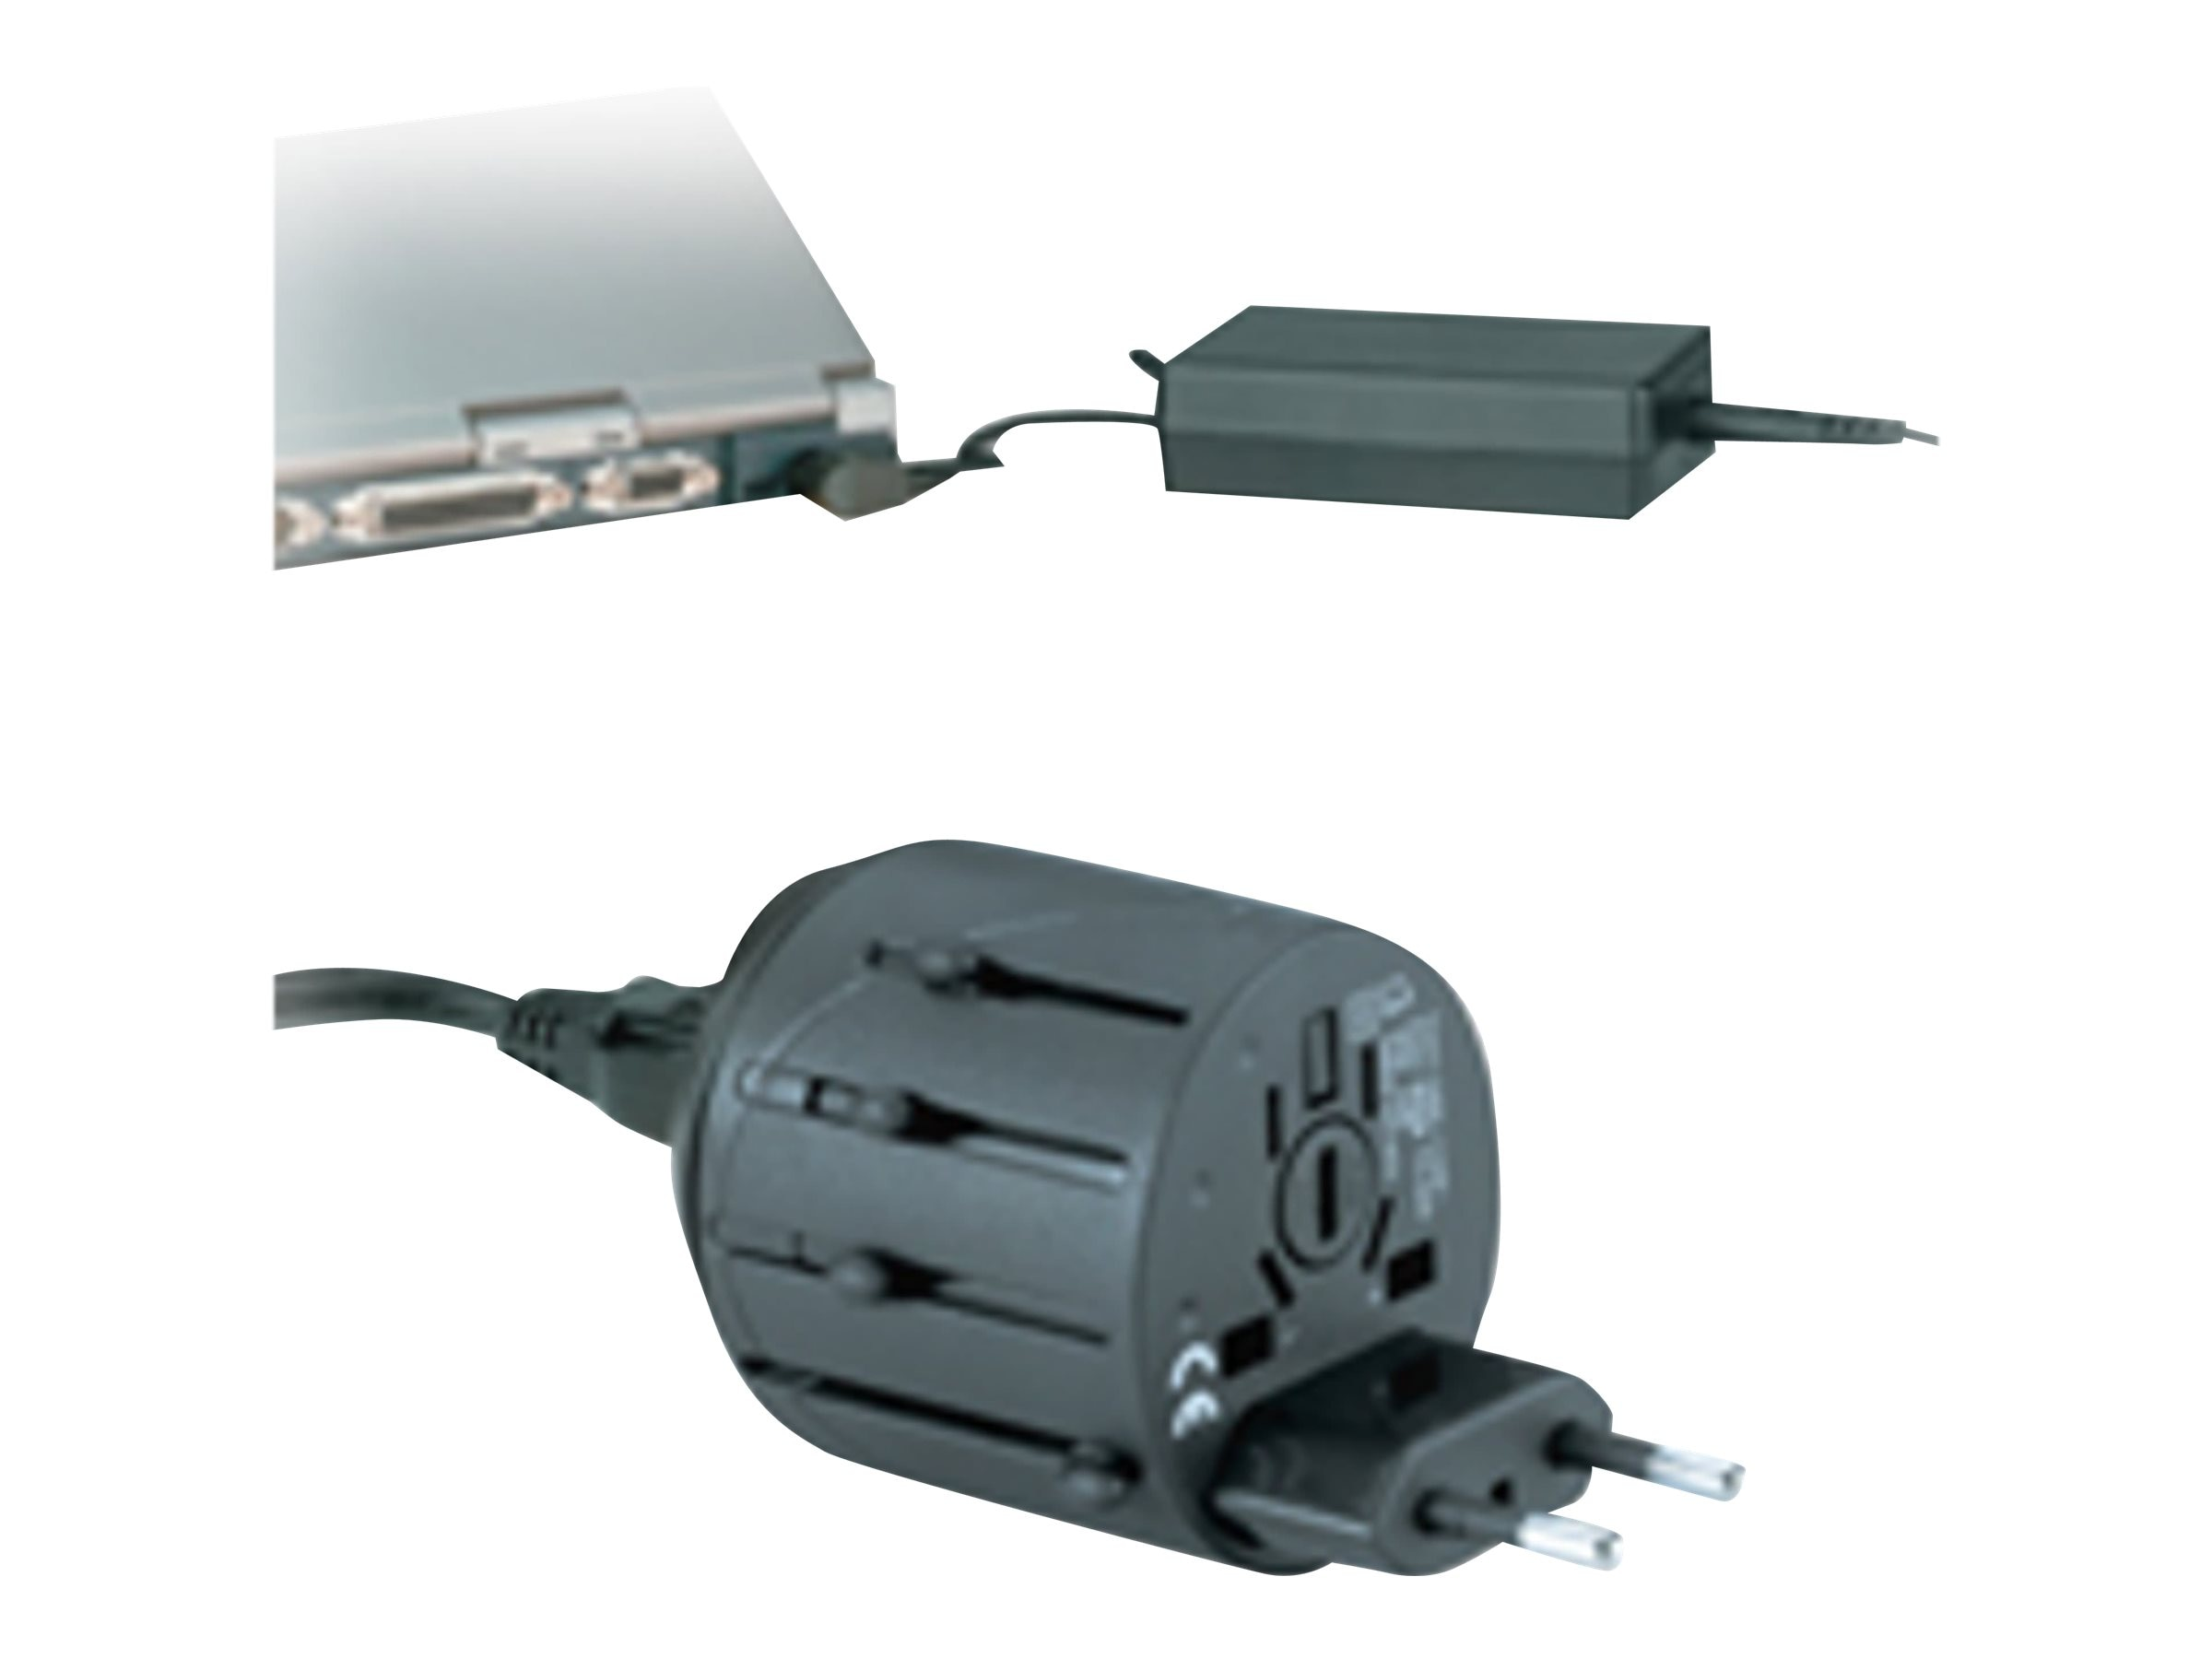 Kensington Travel Plug Adapter, K33117, 6068436, Power Converters